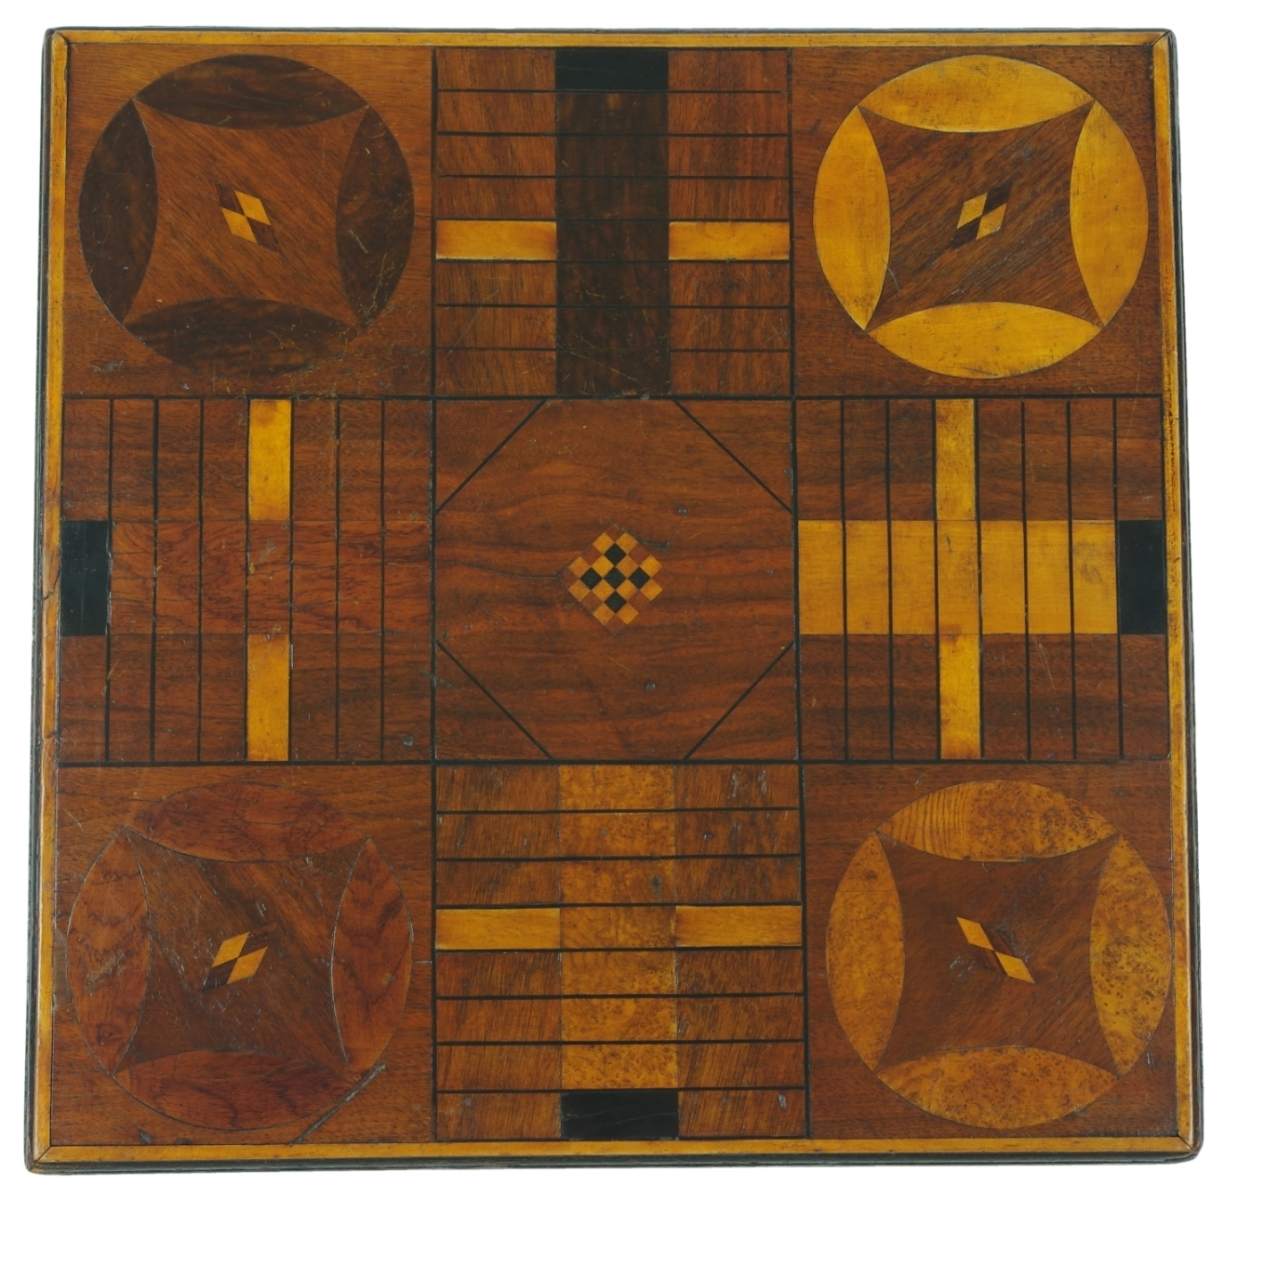 Inlaid Parcheesi Board Mounted as a Table, 19th c.